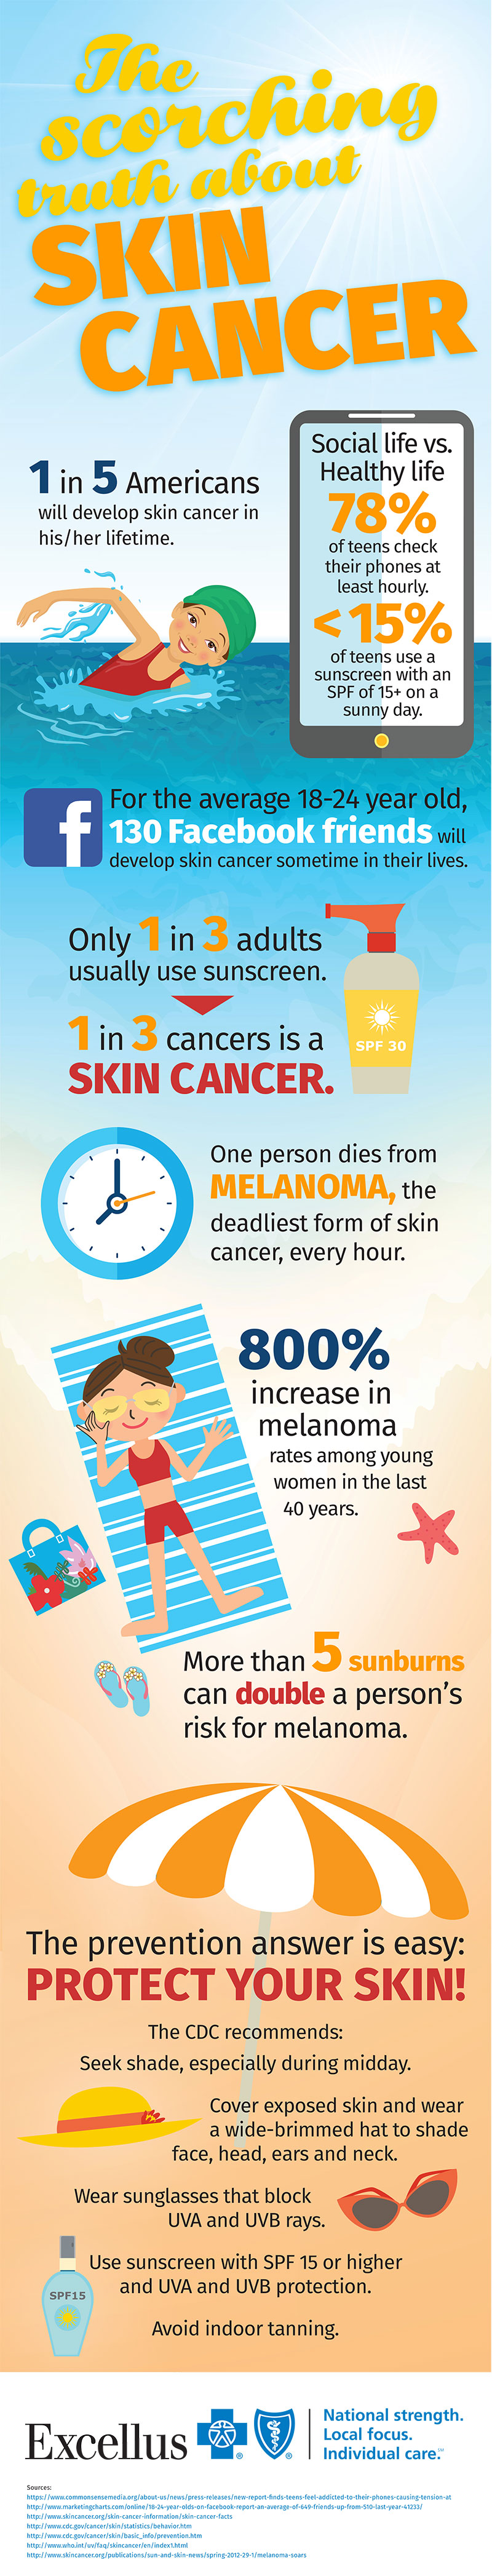 The Scorching Truth About Skin Cancer